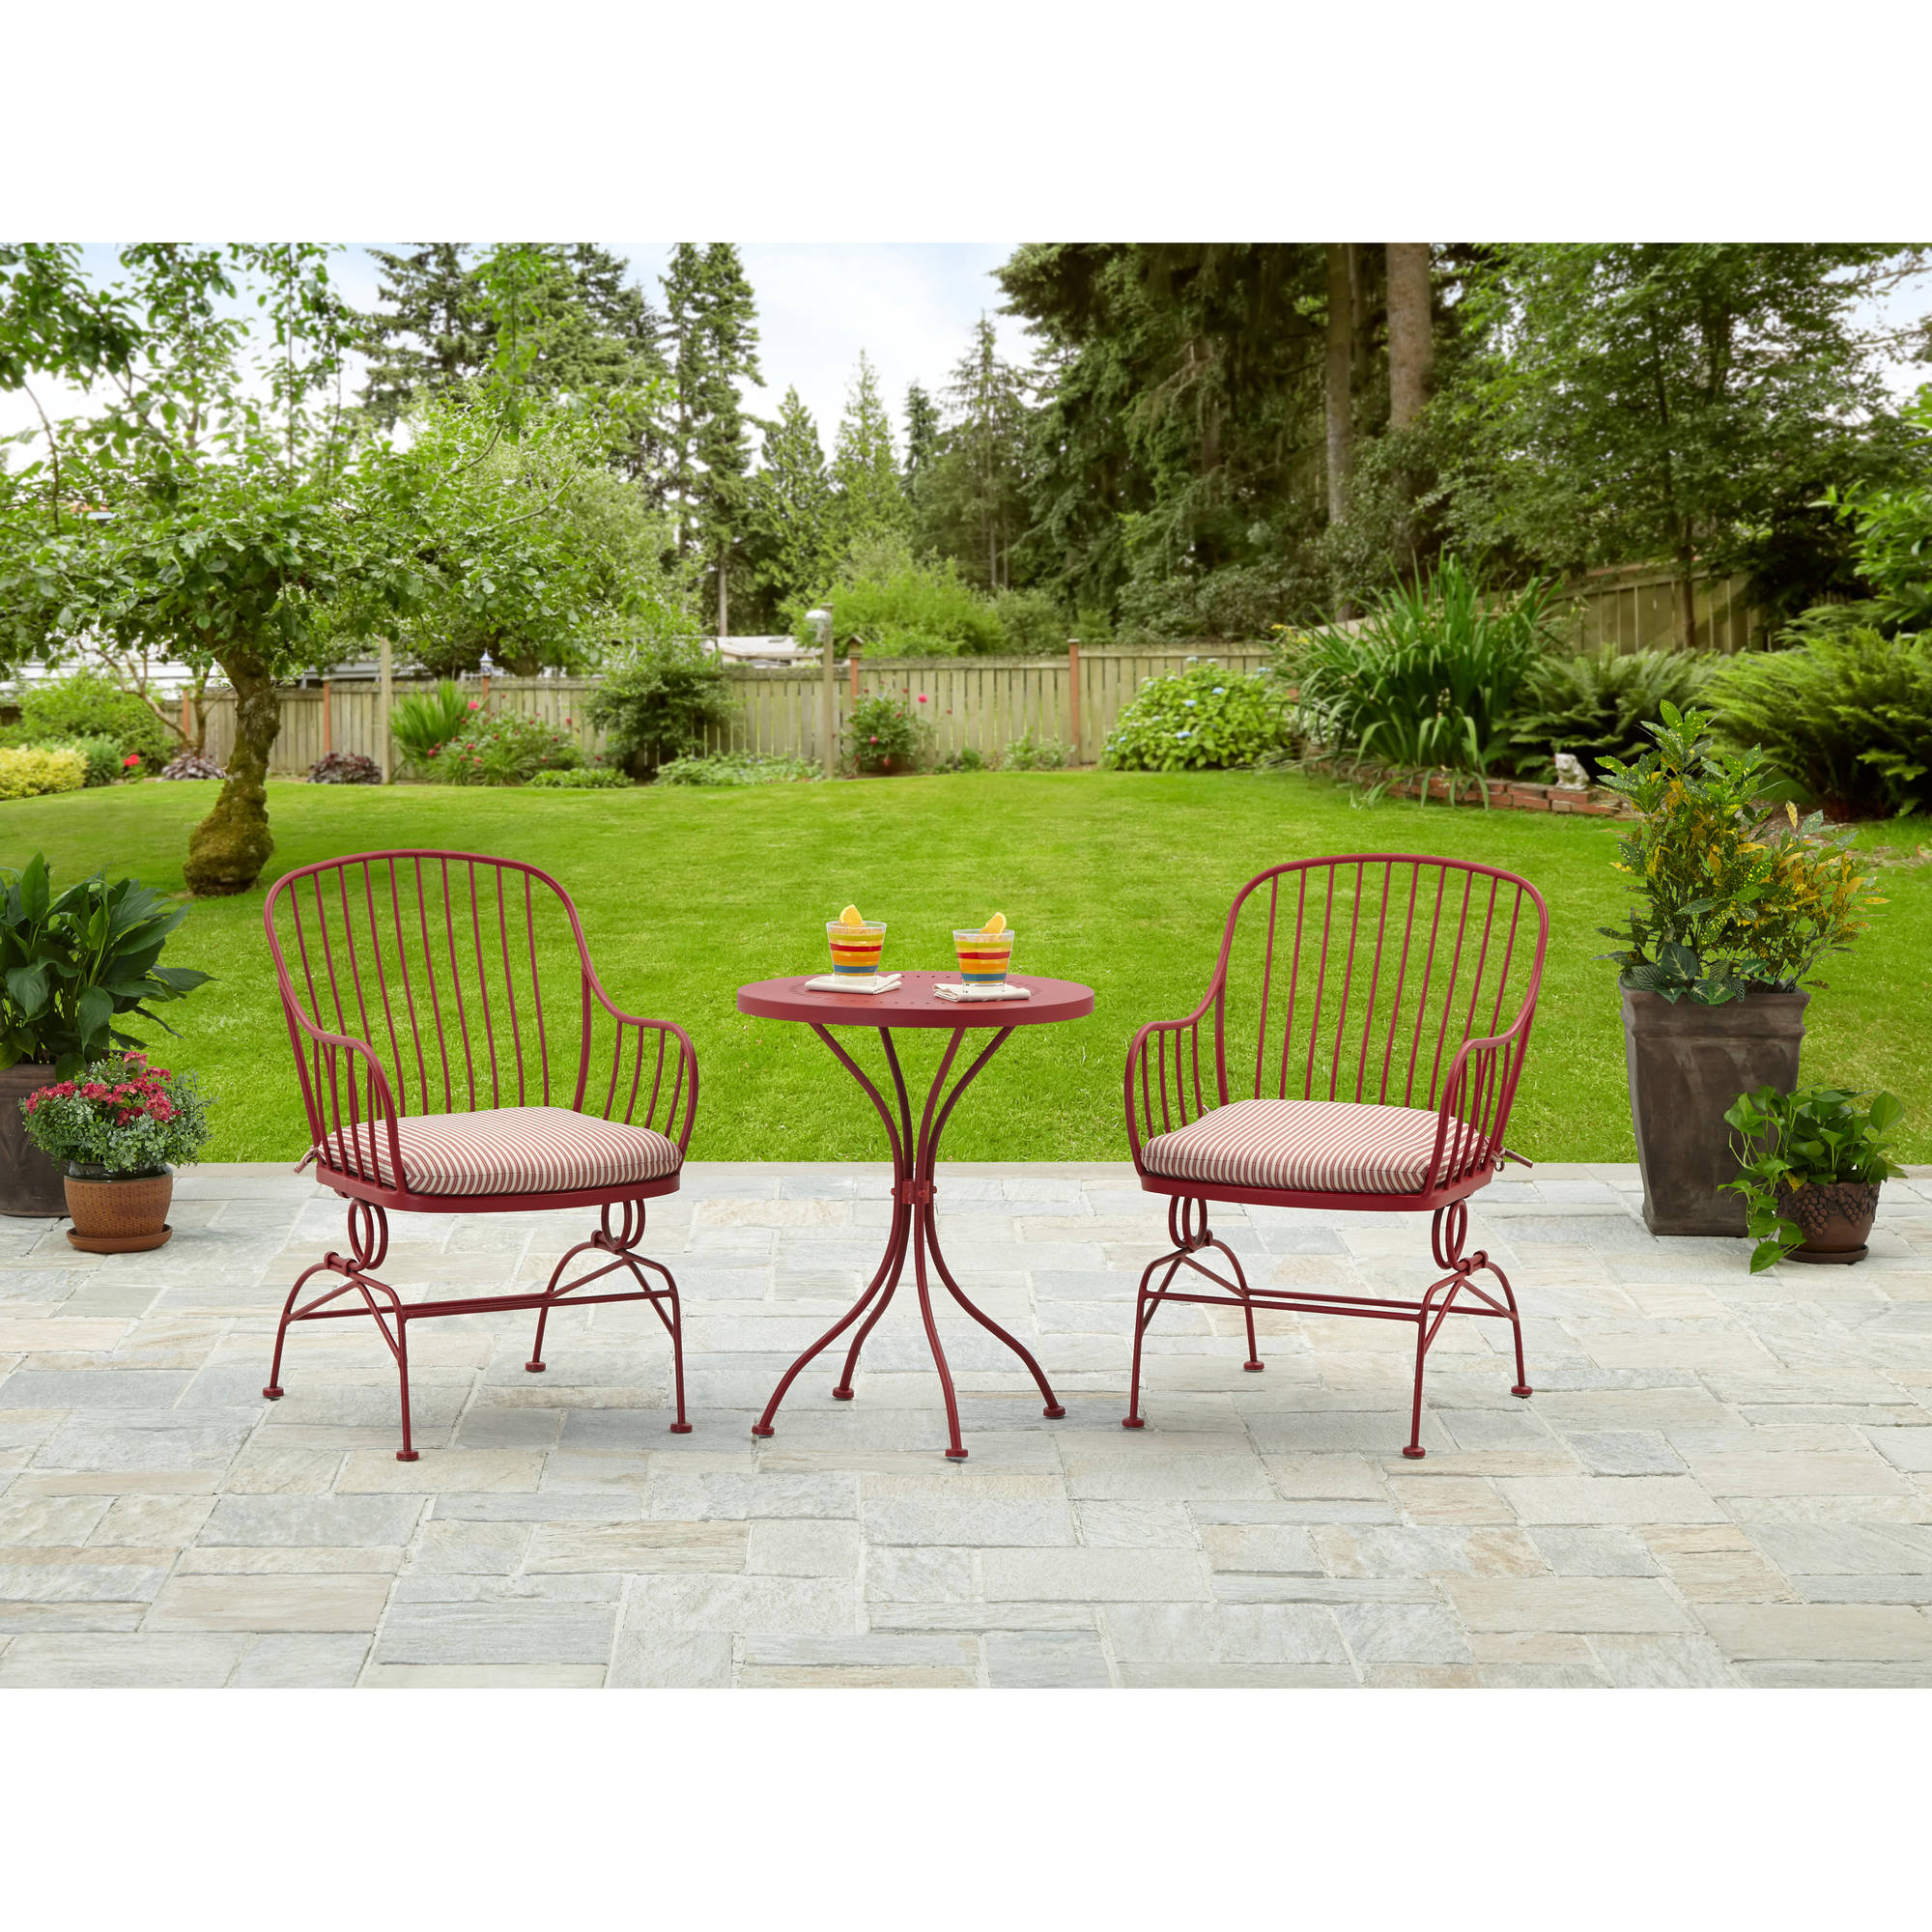 lawn furniture mainstays 3-piece metal outdoor bistro set, seats 2, red - walmart.com MCBQKGW